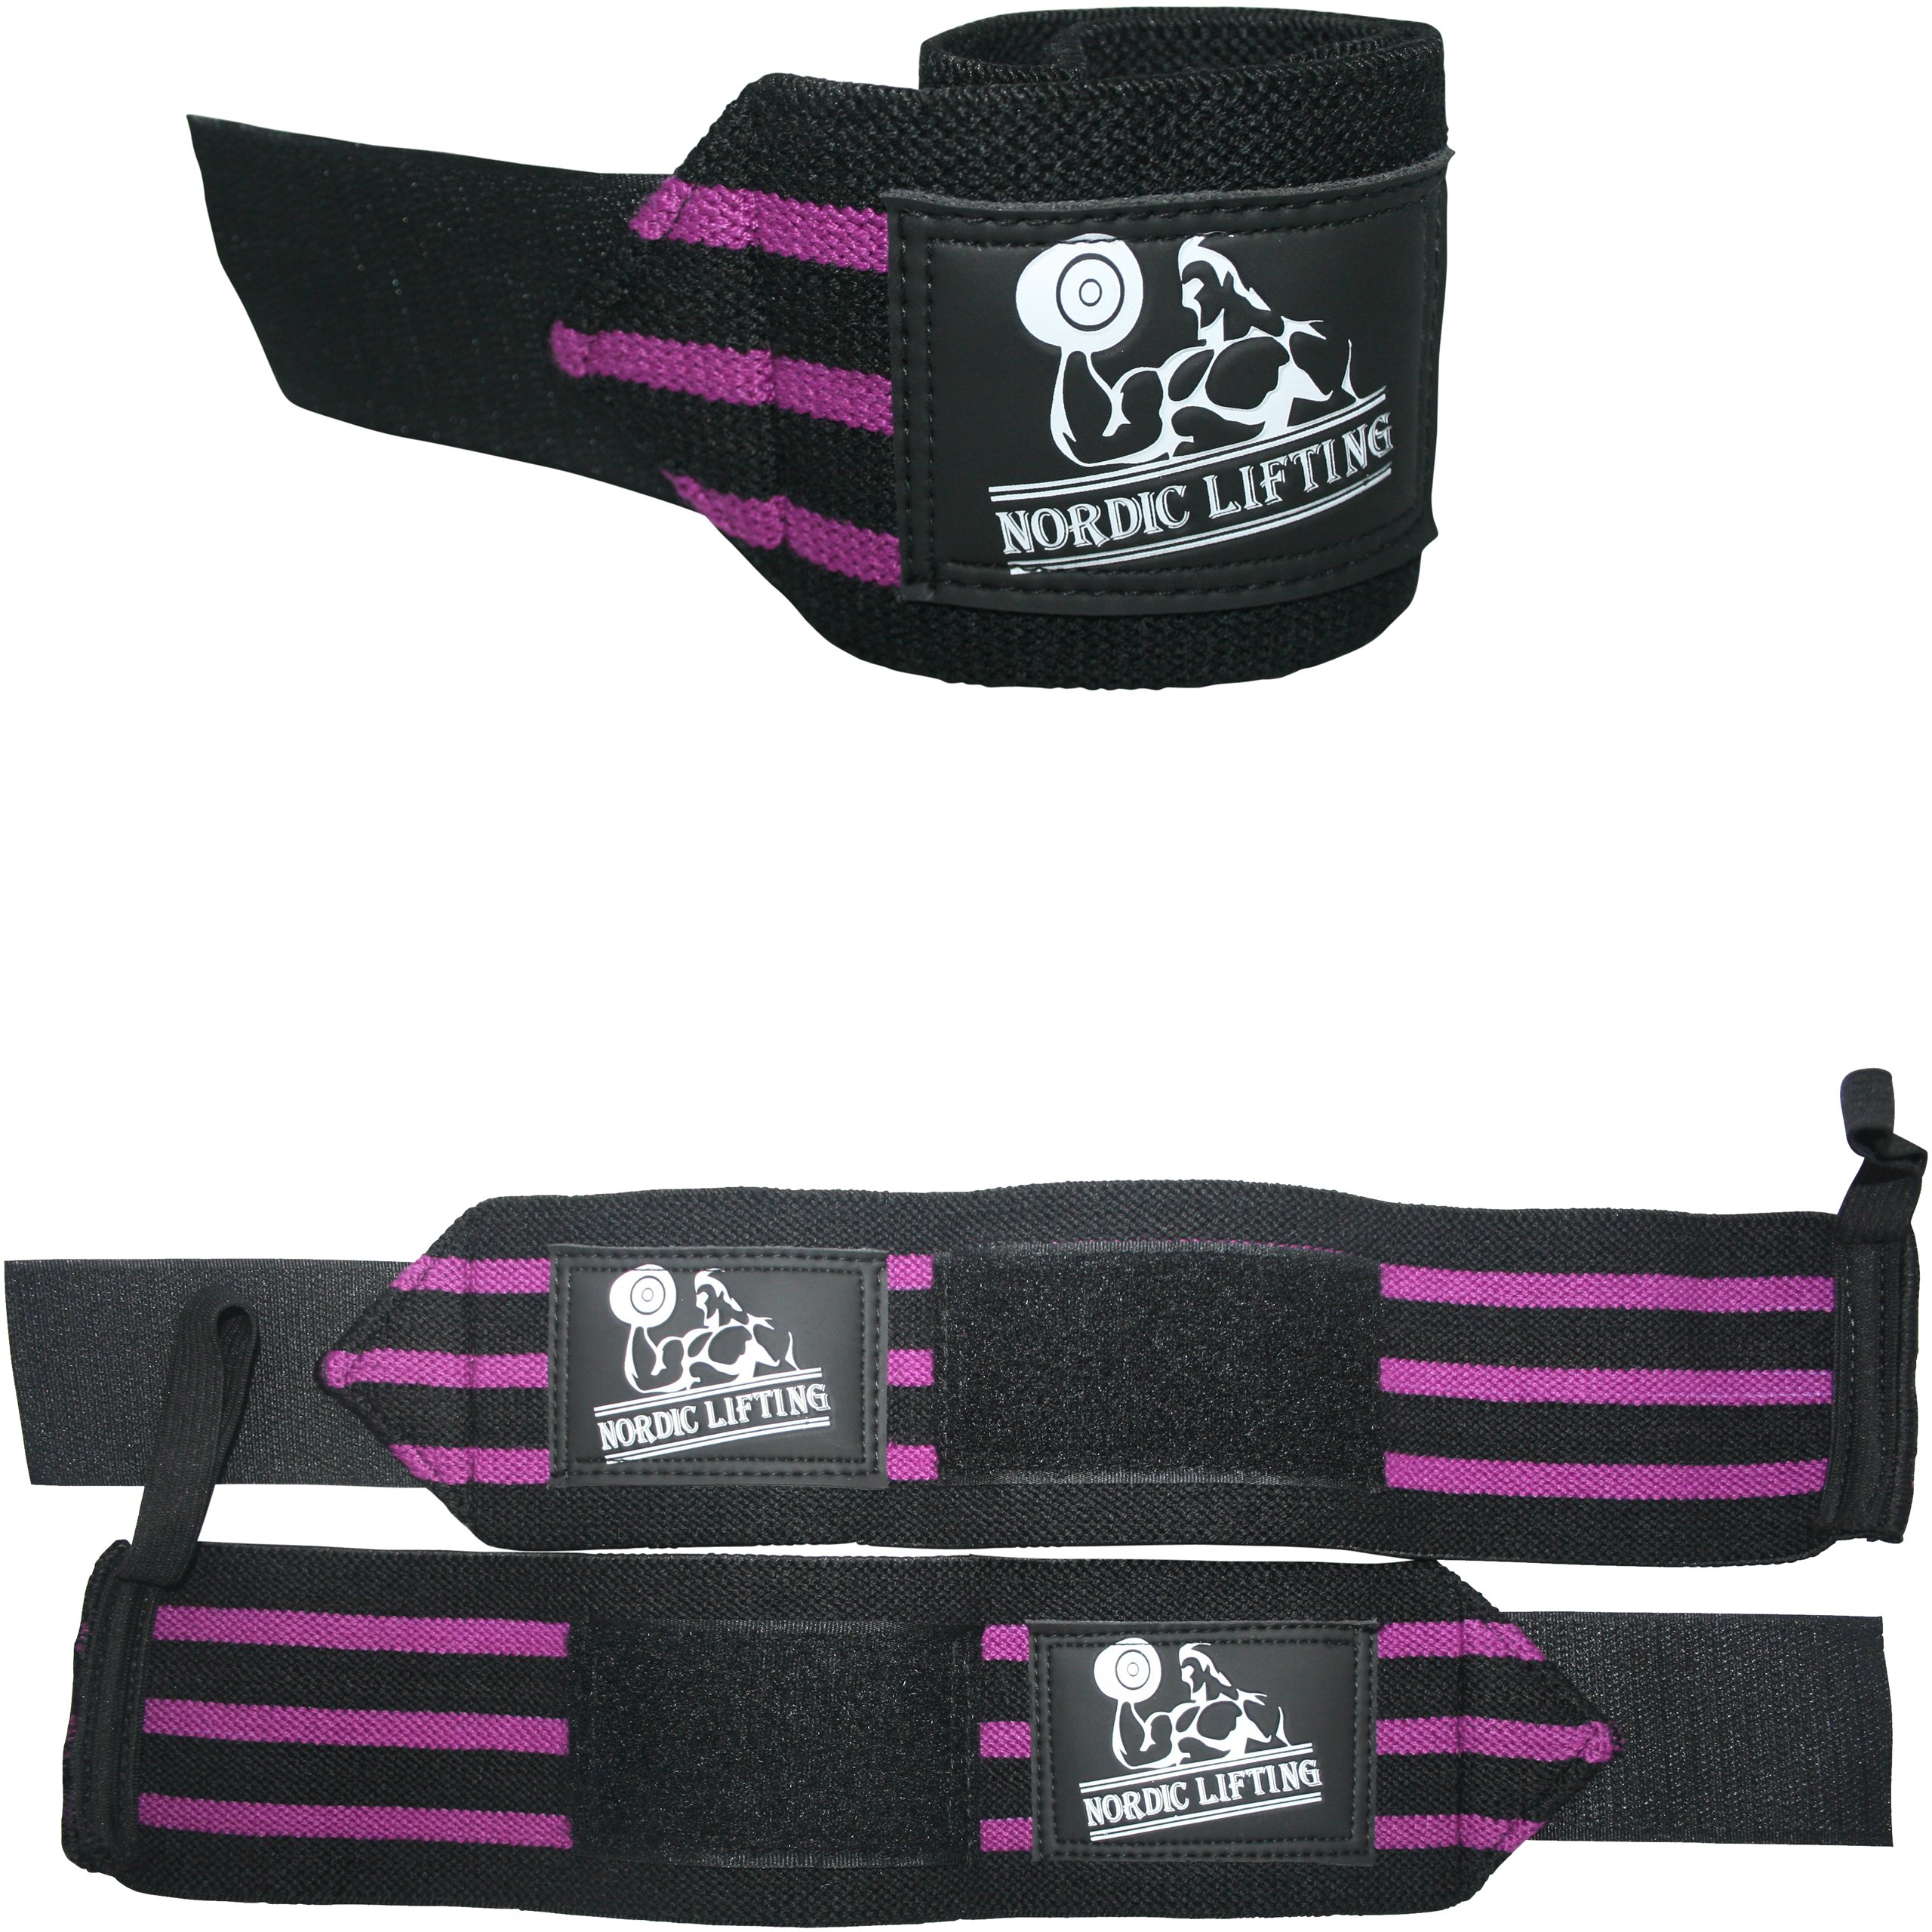 Wrist Wraps (1 Pair/2 Wraps) for Weightlifting/Cross Training/Powerlifting/Bodybuilding -Women & Men-Premium Quality Equipment & Accessories Avoid Injury During Weight Lifting-(Purple)-1 Year Warranty